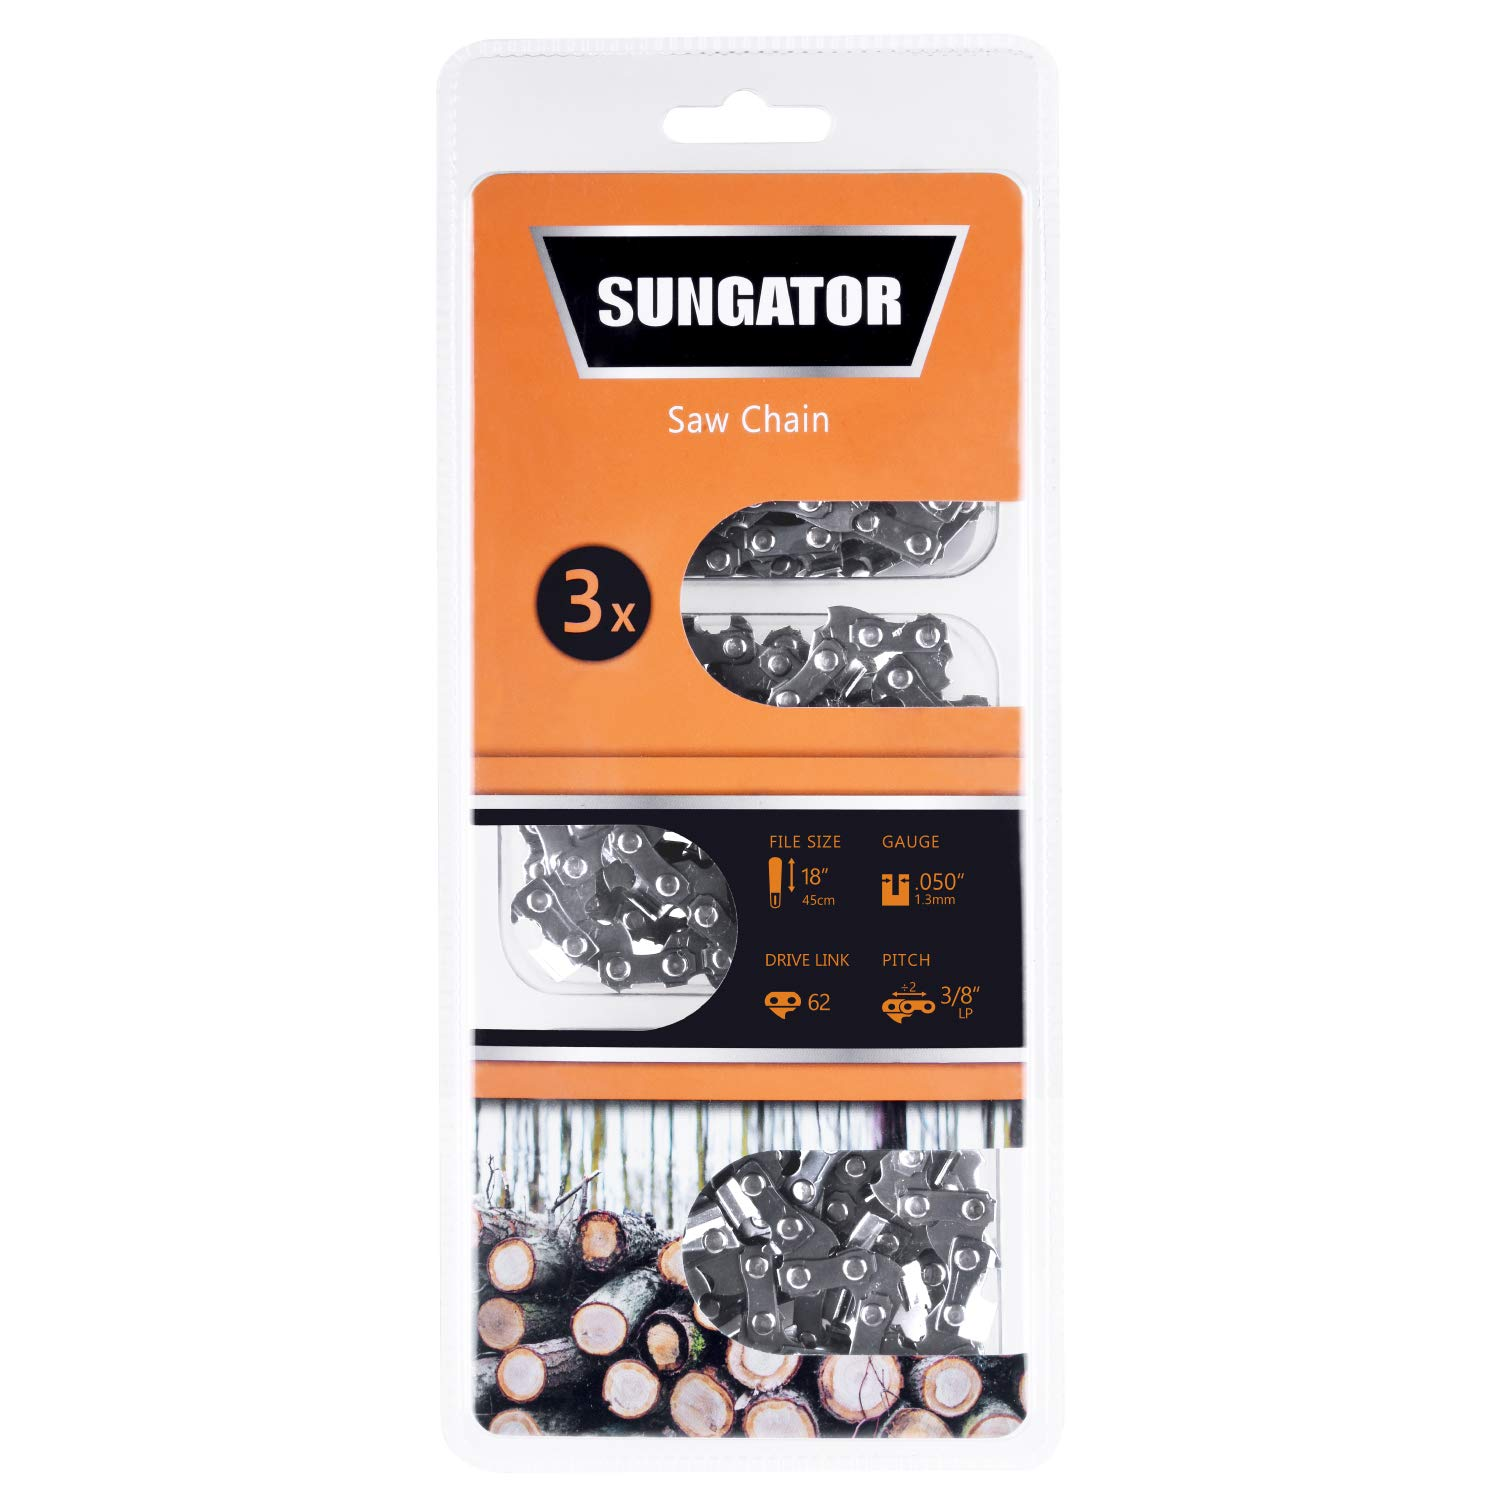 SUNGATOR 3-Pack 18 Inch Chainsaw Chain SG-S62, 3/8'' LP Pitch - .050'' Gauge - 62 Drive Links, Fits Craftsman, Husqvarna, Ryobi, Homelite, Poulan